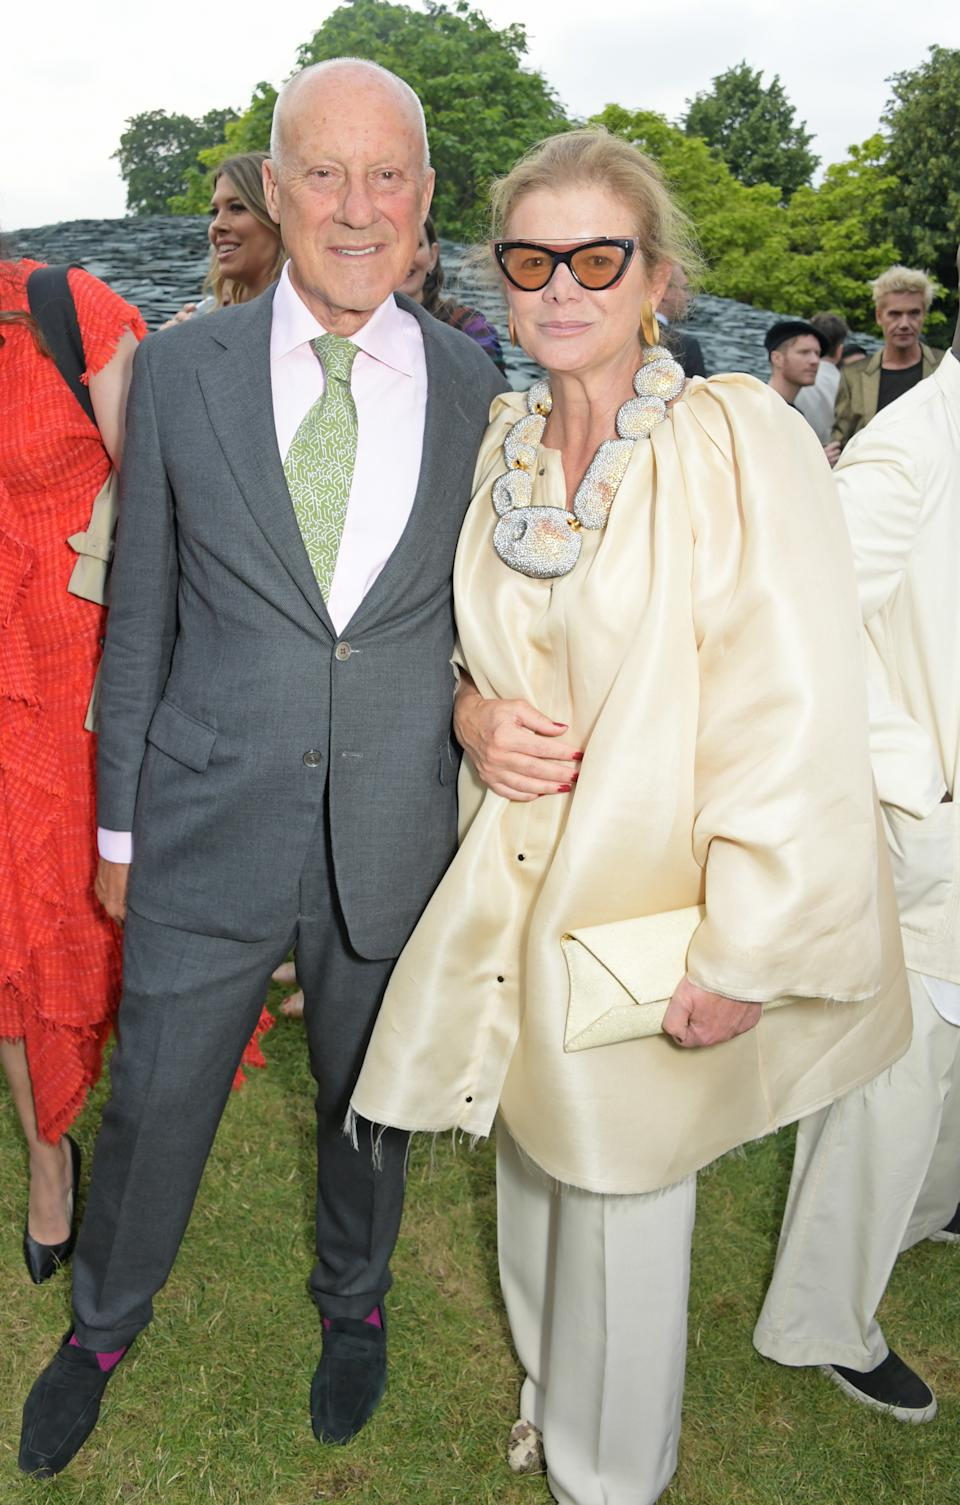 LONDON, ENGLAND -  JUNE 25:   Lord Norman Foster and Lady Elena Ochoa Foster attend The Summer Party 2019, presented by Serpentine Galleries & Chanel, and hosted by Michael R. Bloomberg, Hans Ulrich Obrist & Sir David Adjaye, at The Serpentine Gallery on June 25, 2019 in London, England.  (Photo by David M. Benett/Dave Benett/Getty Images for Serpentine Galleries)